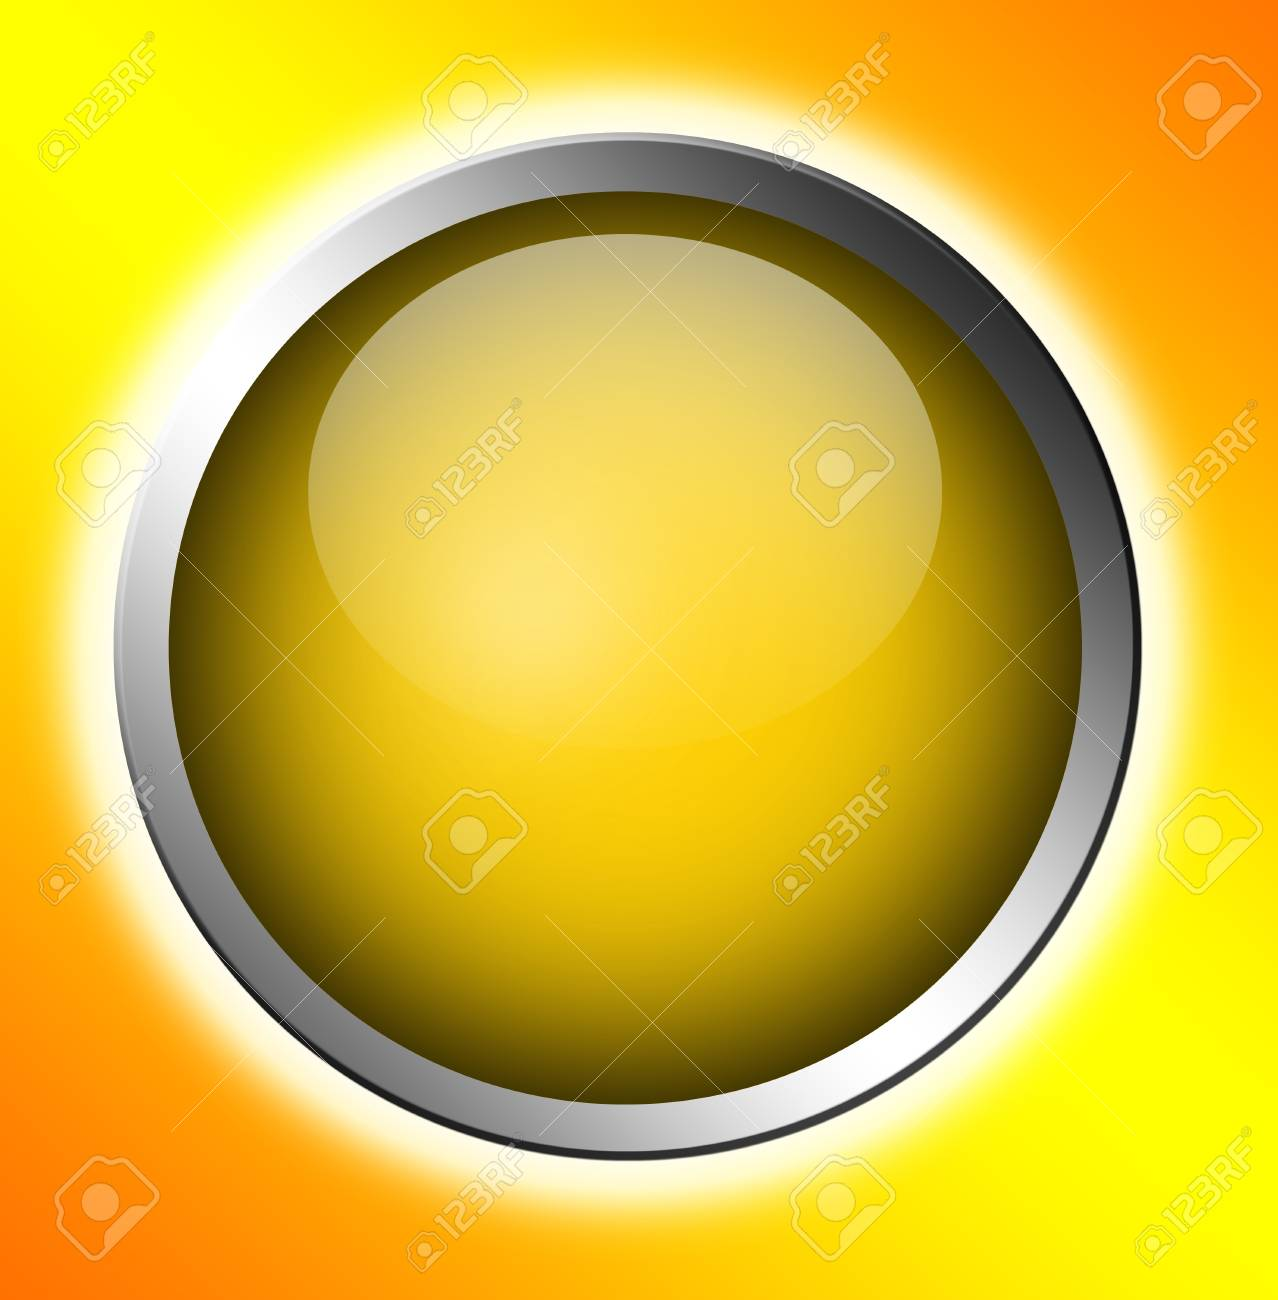 yellow button  over orange background. abstract illustration Stock Photo - 9667098